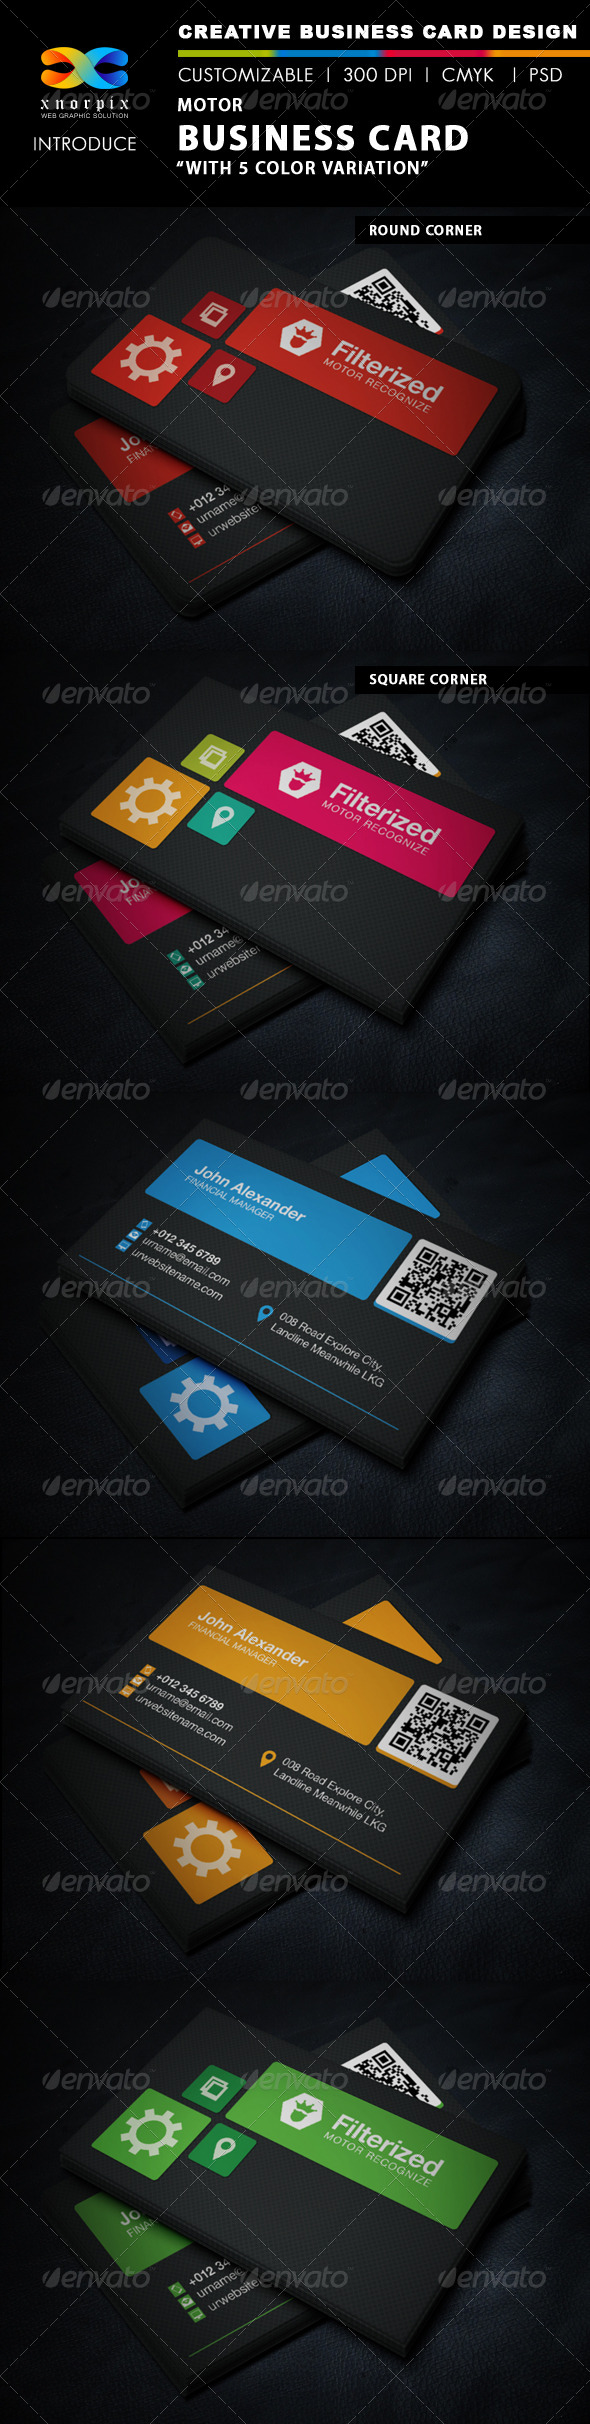 Motor Business Card - Corporate Business Cards